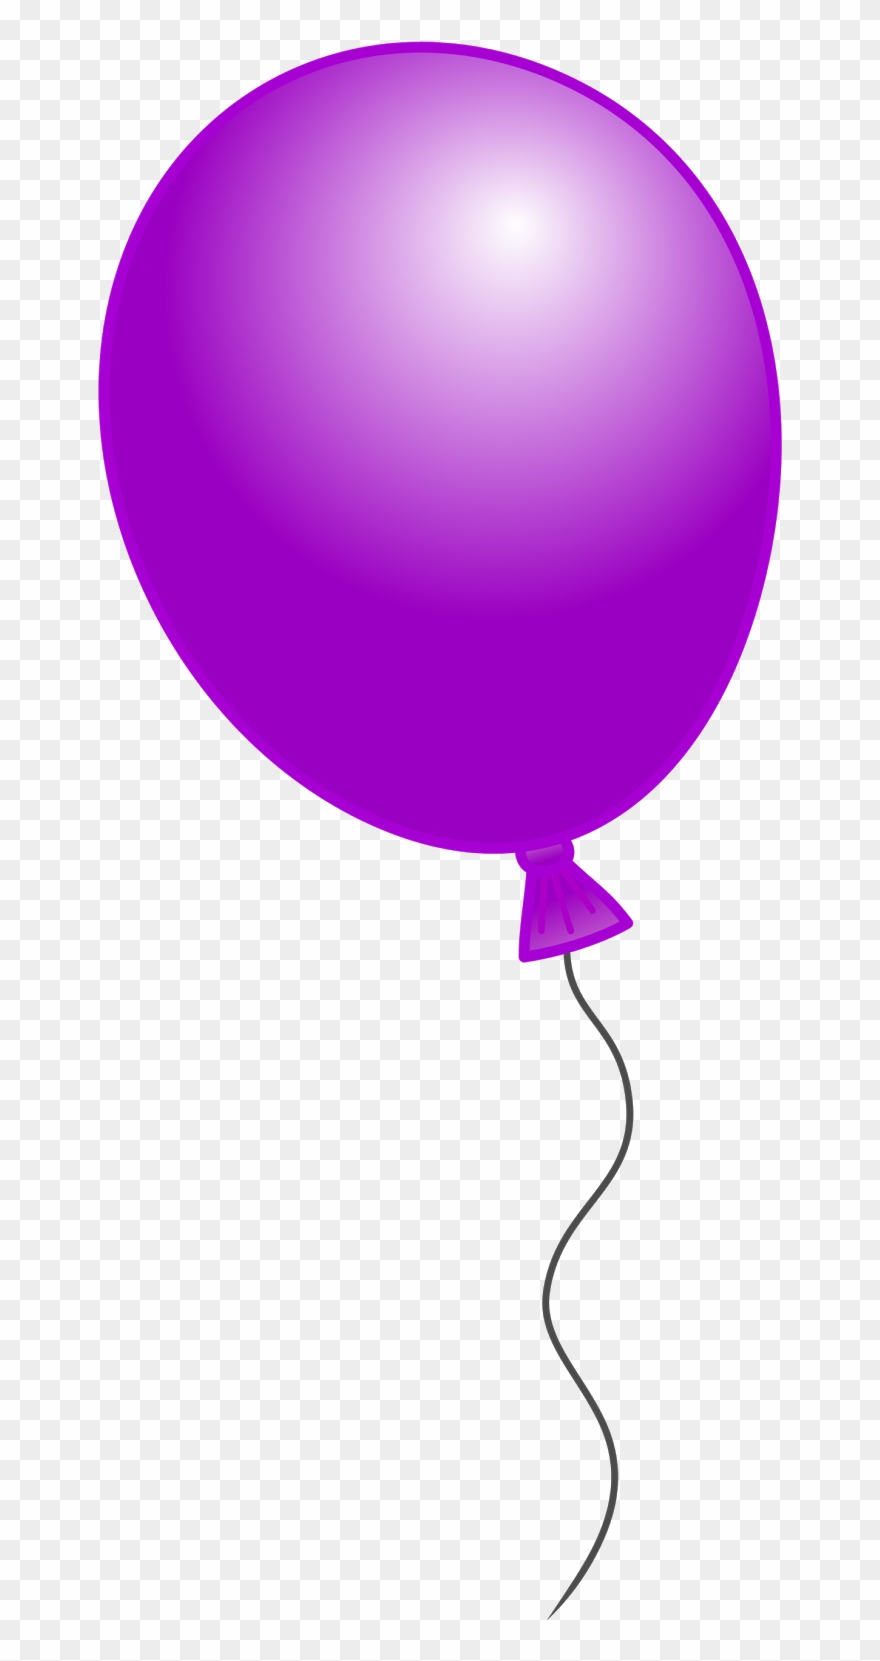 Balloon clipart single. Number png